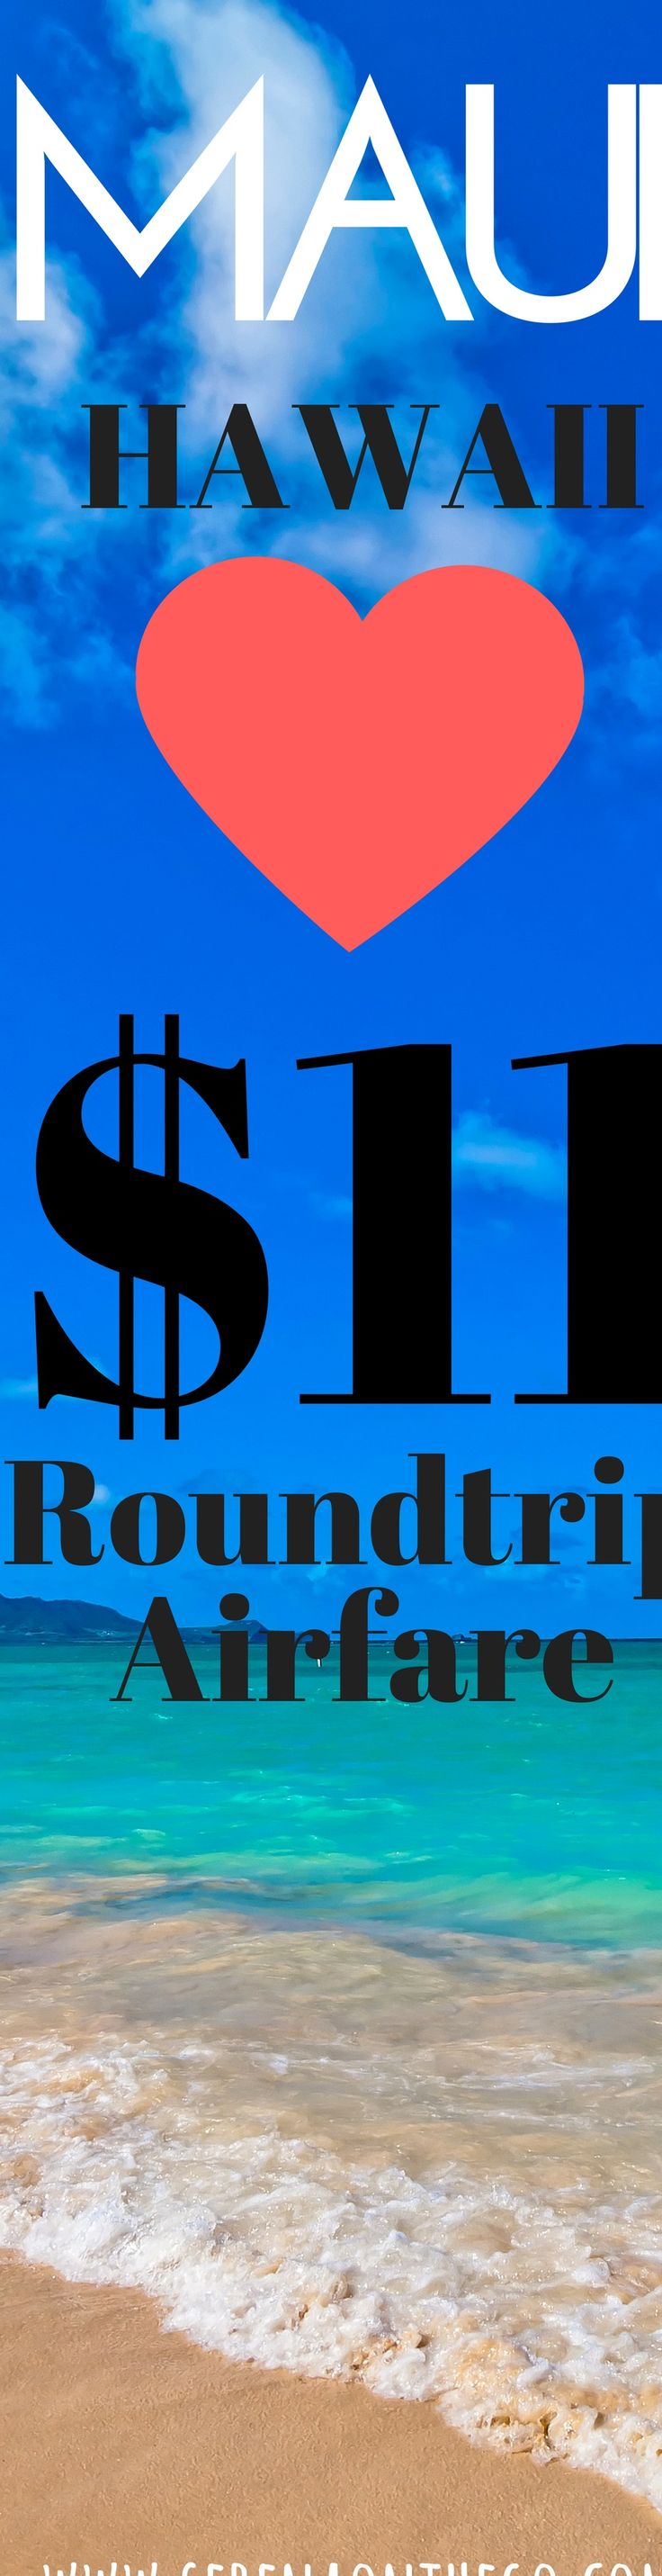 3 Roundtrip airfare tickets to Maui, Hawaii for a total cost of $33.60 FLY FREE